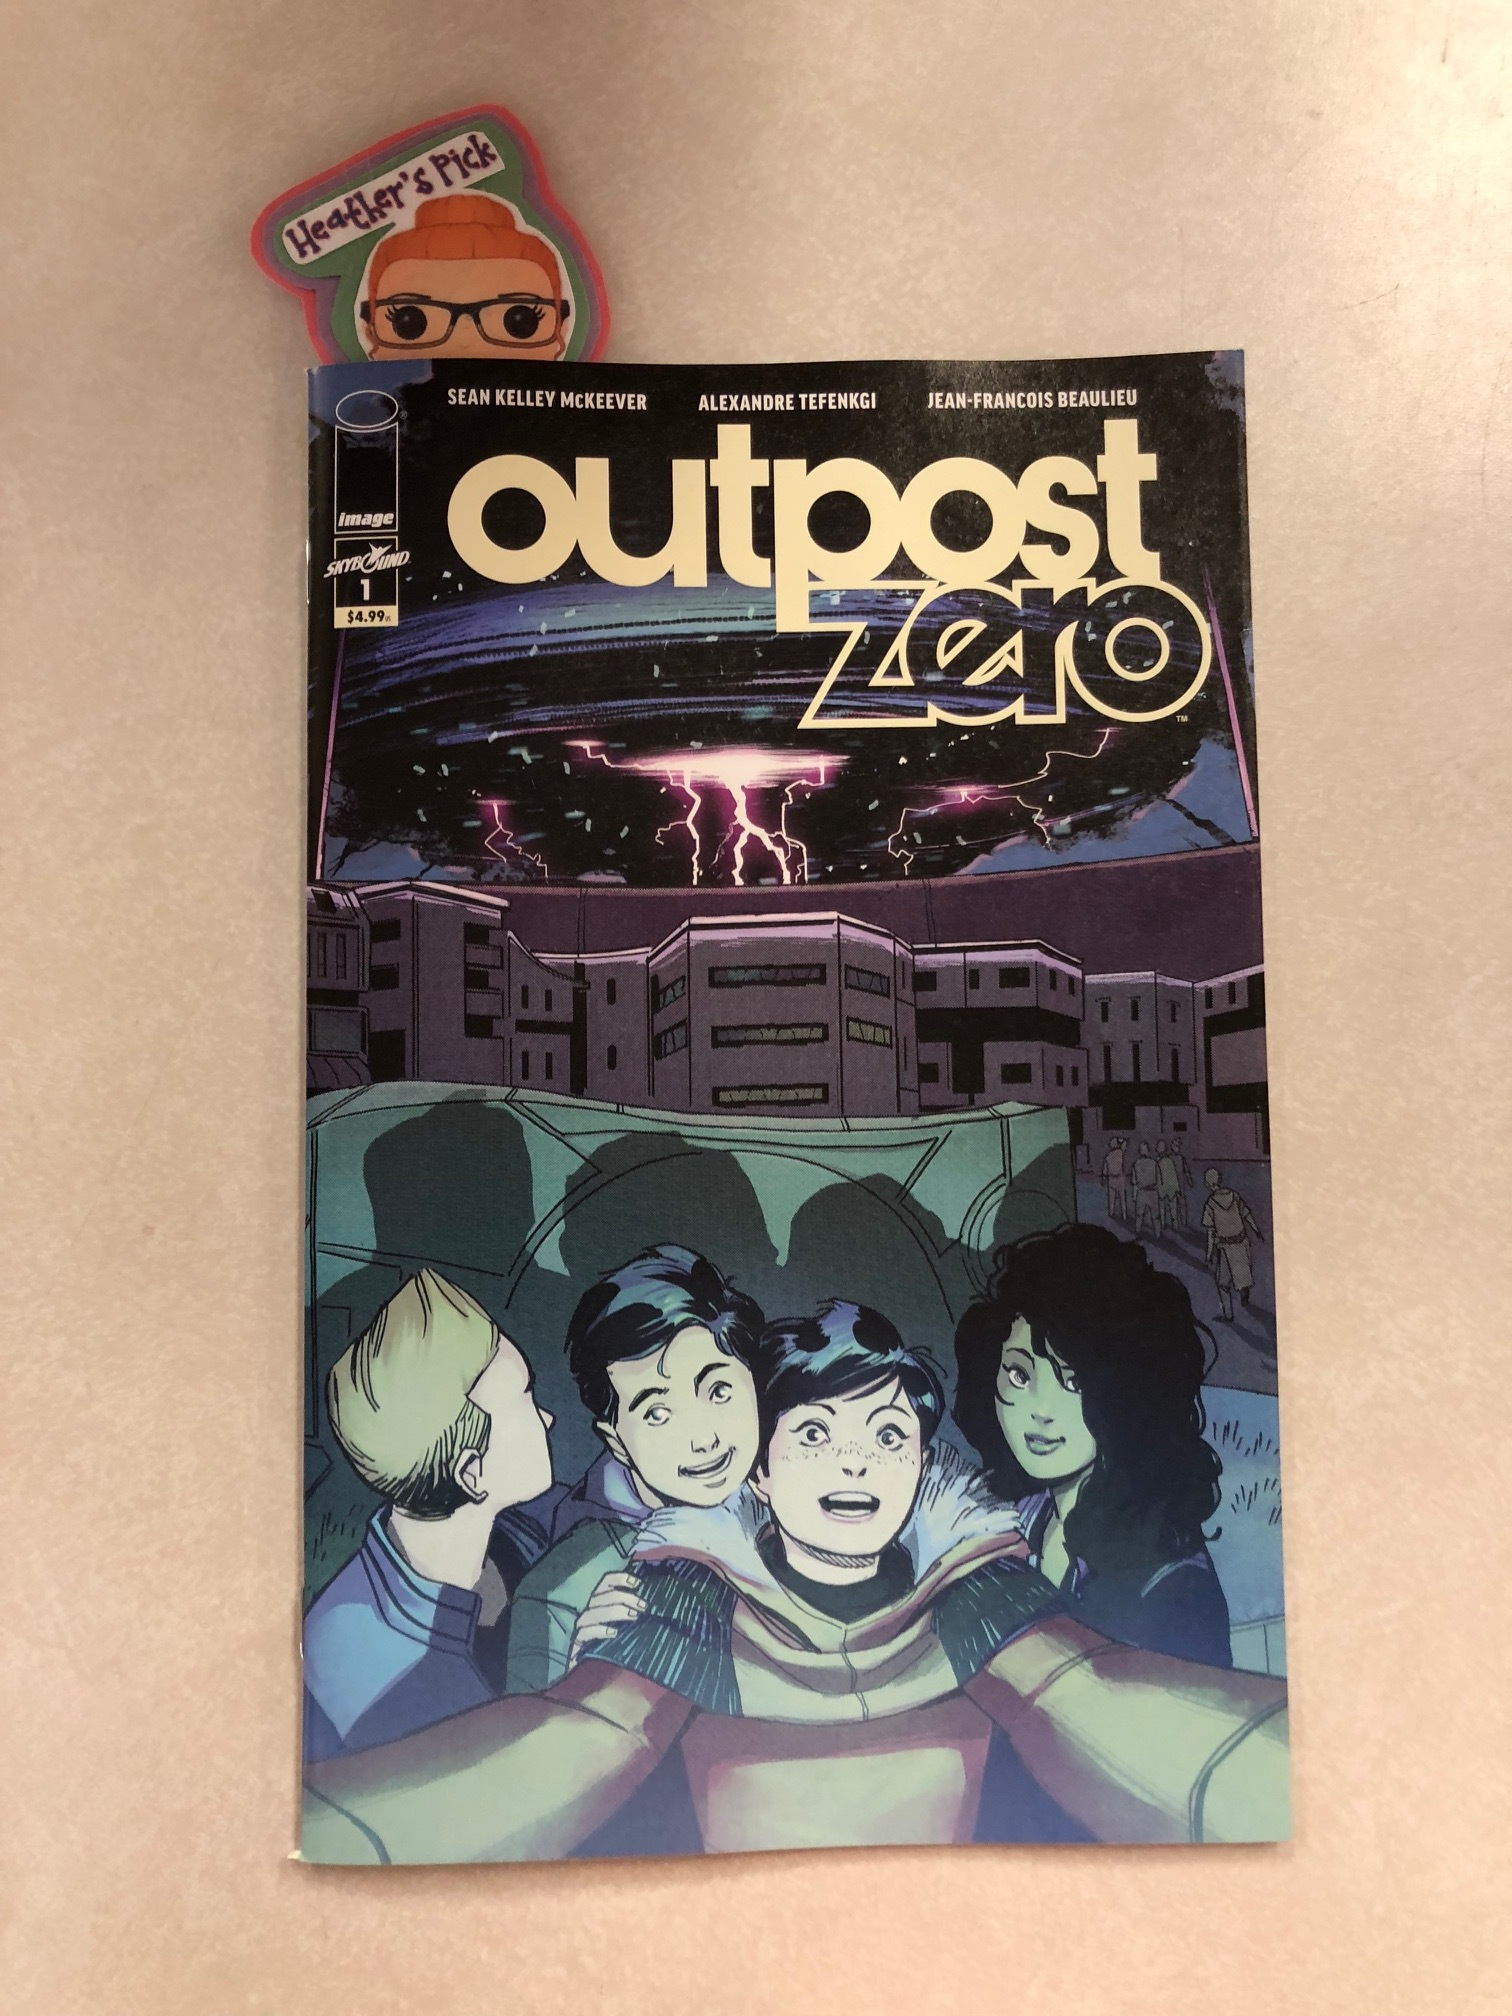 Outpost Zero #1 - Heather's PickWriter: Sean Kelley McKeeverArtist: Alexandre TefenkgiColorist: Jean-Francois BeaulieuWelcome to Outpost Zero, the smallest town in the universe. The people there work the land, go to the fights every Friday night, and tuck their children into bed-but the Outpost is no place for dreams or aspirations. To survive is ambitious enough. As Alea and her friends graduate to adulthood on a frozen world never meant to support human life, something stirs. Something sees... Explore the mysteries and wonder of the Frost in this oversized debut issue by Eisner-winning writer Sean Kelley McKeever (Mystique), artist Alexandre Tefenkgi, and colorist Jean-Francois Beaulieu (I Hate Fairyland).